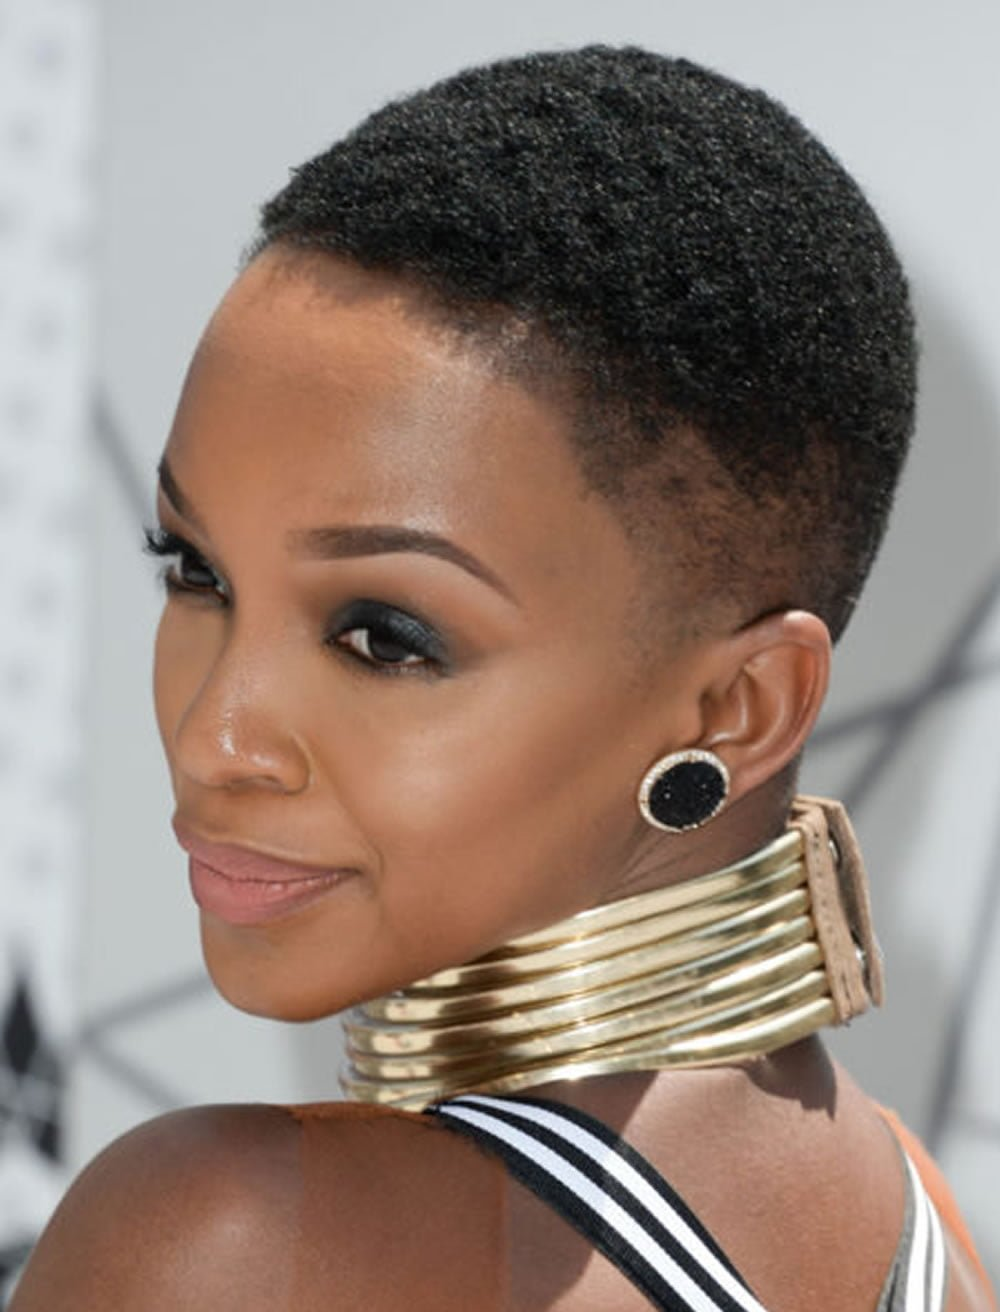 Very short pixie haircut 2019 for black women - Page 4 - HAIRSTYLES